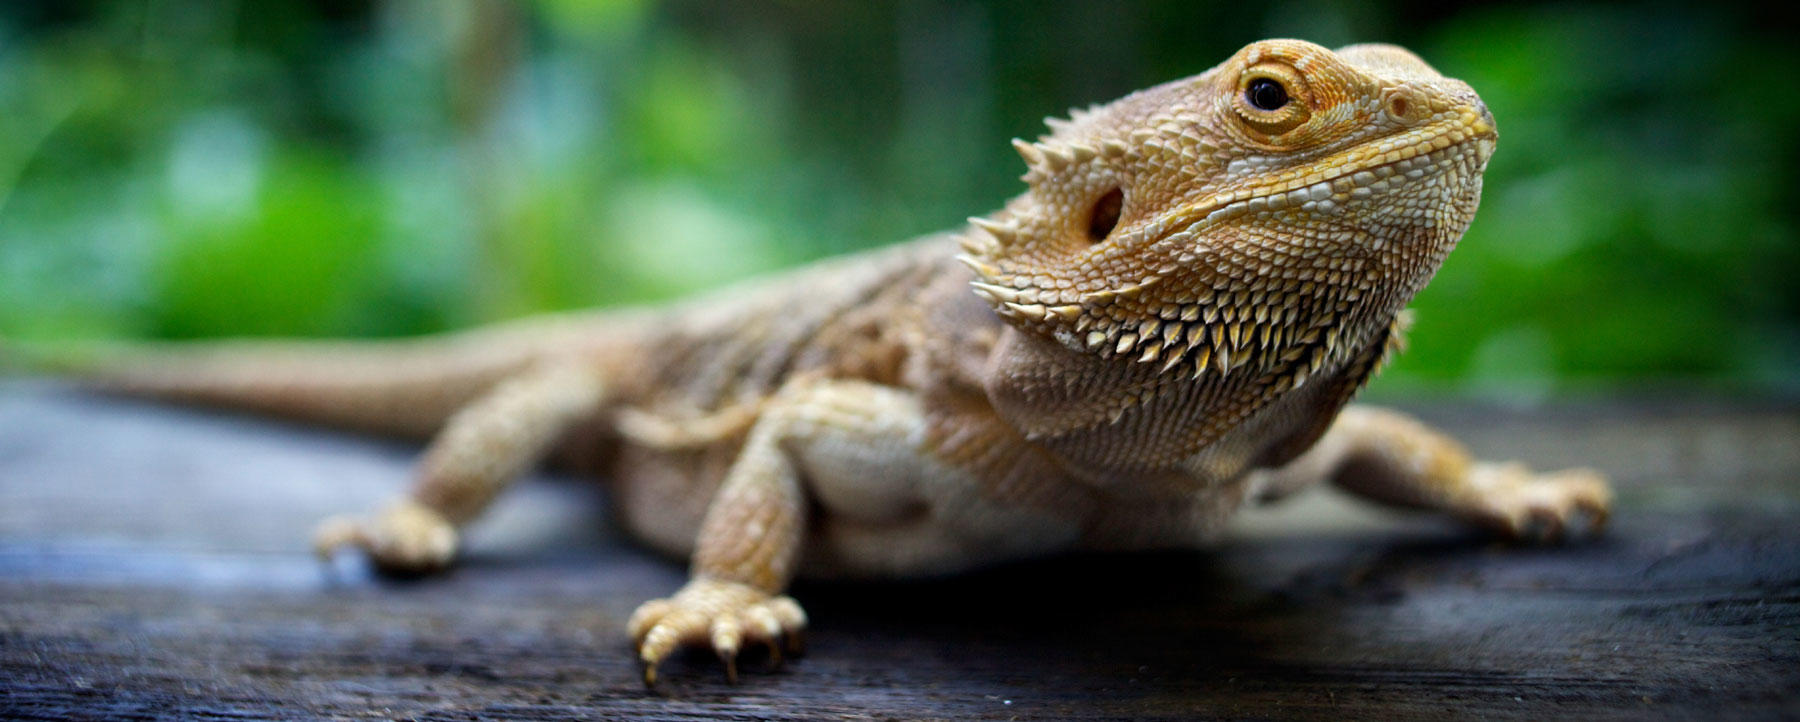 Close up of Pogona, standing on wood, looking at camera